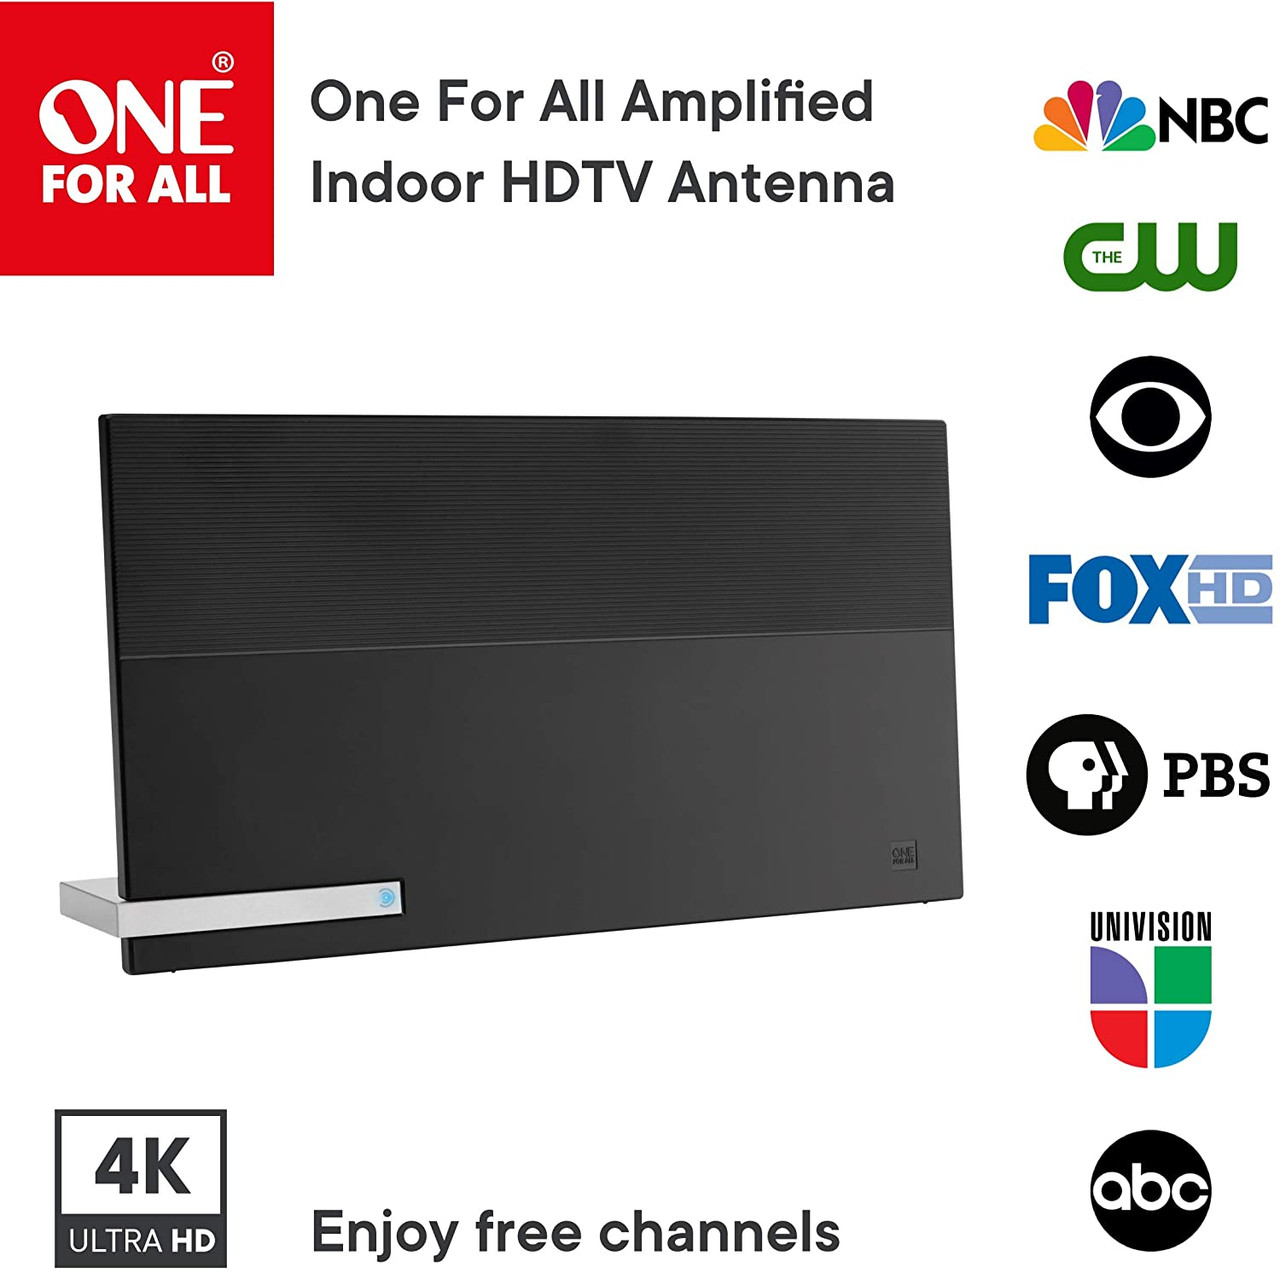 One For All U16424 Amplified HDTV 4K Antenna Over the Air TV Channels